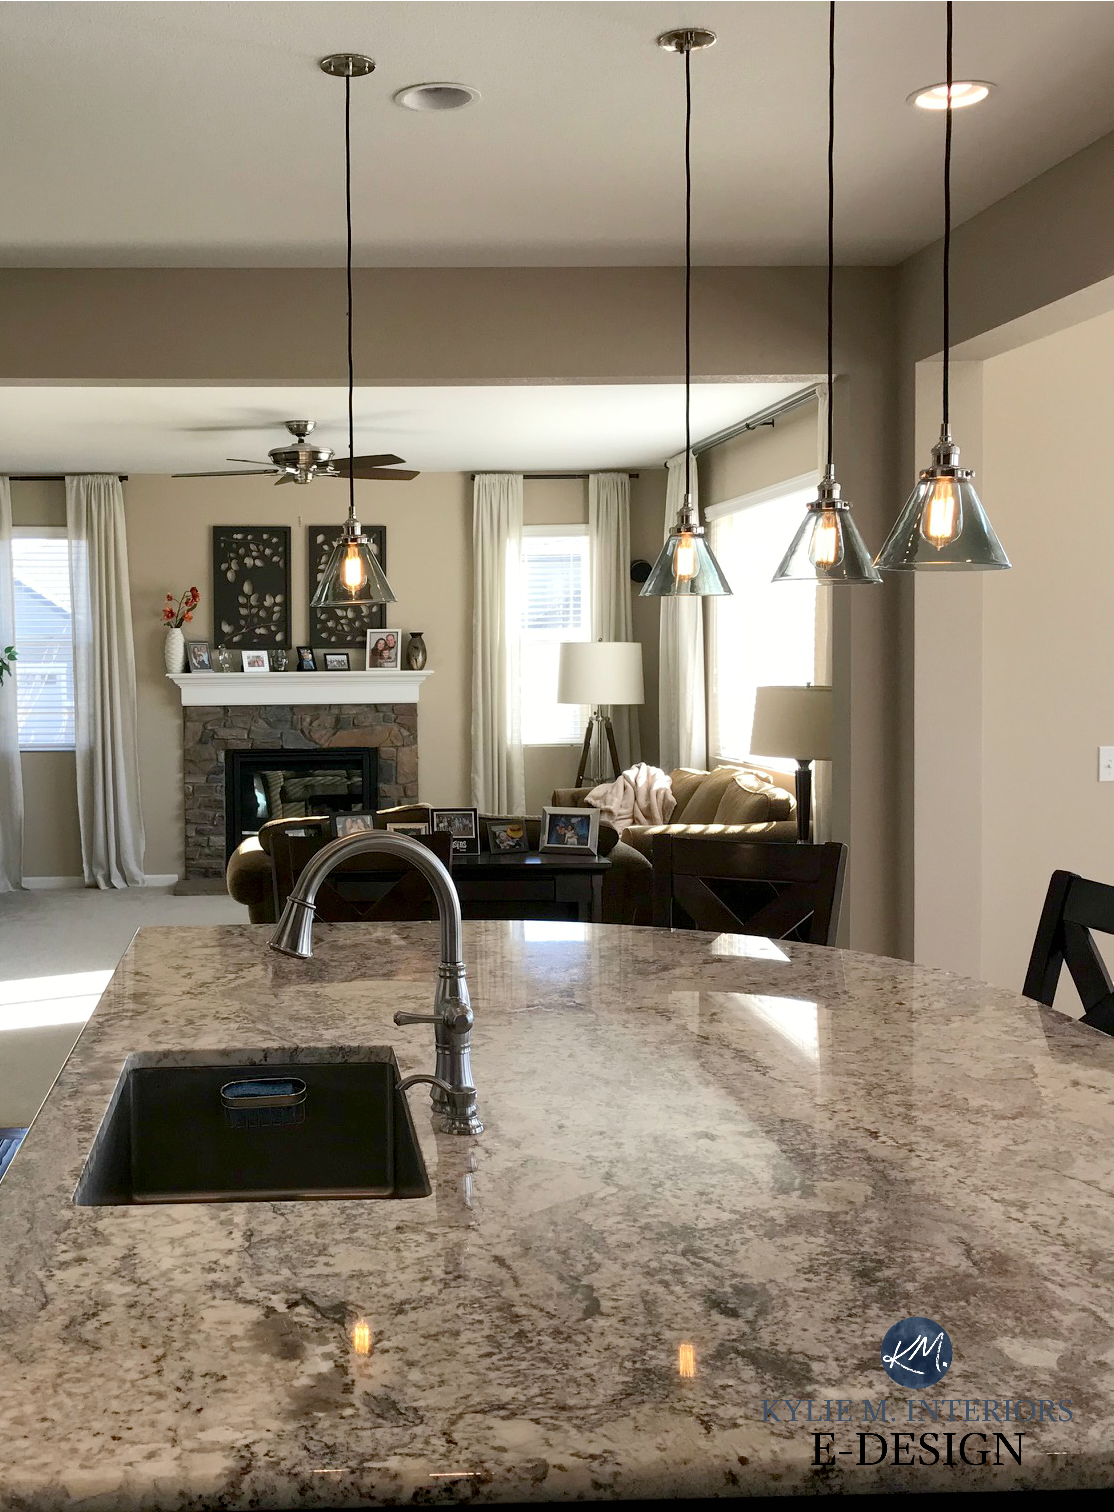 Sherwin williams barcelona beige in open layout kitchen and living room granite stone fireplace kylie m e design